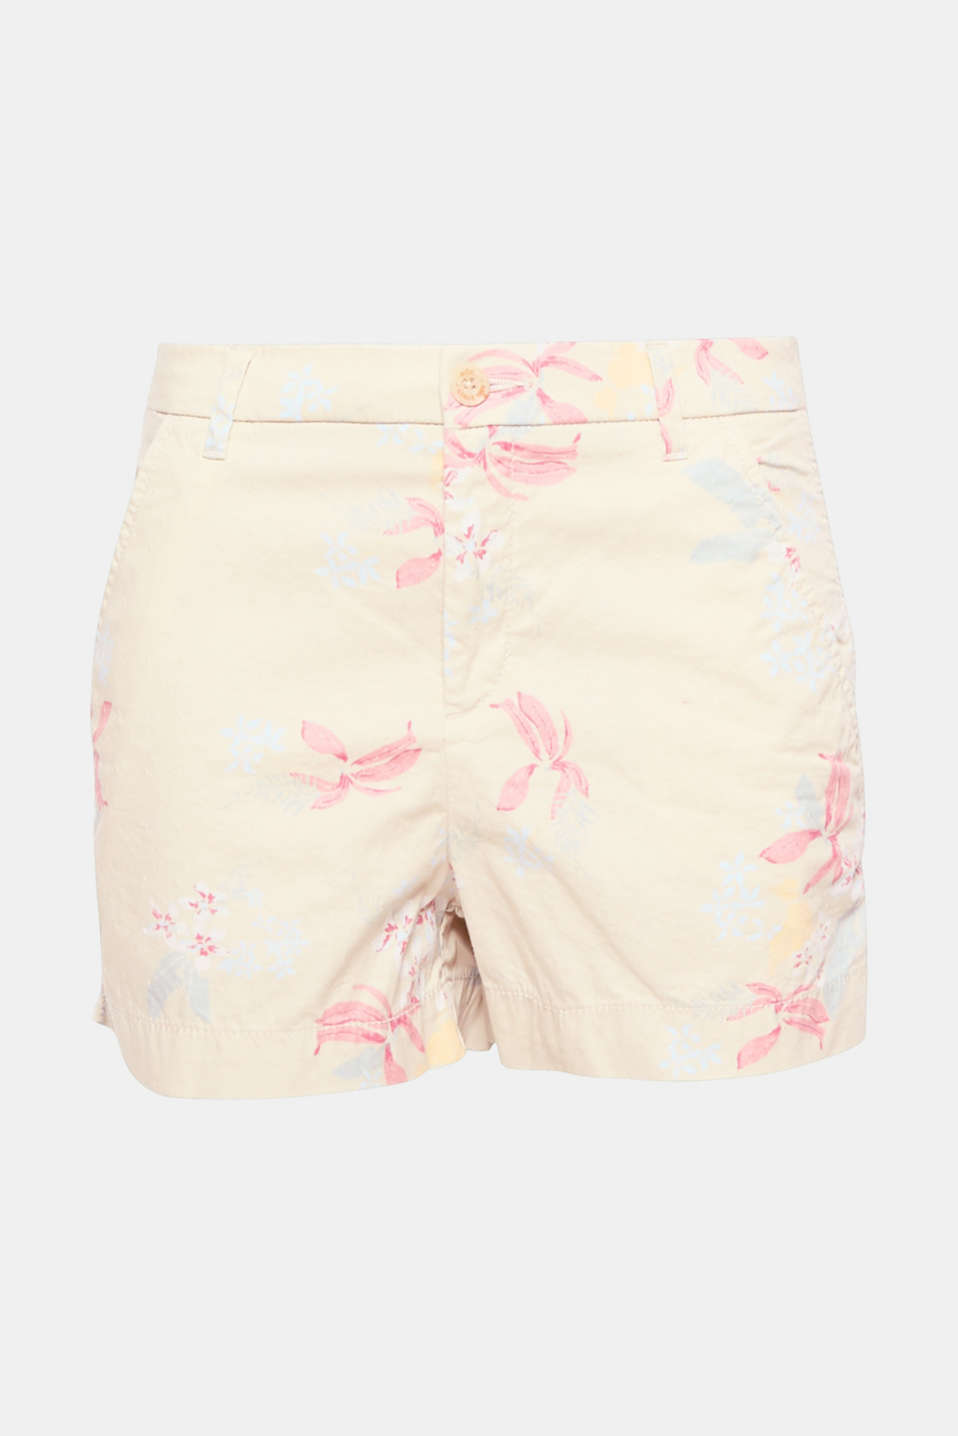 In full bloom! These floral cotton shorts are the perfect piece for staying comfortable and looking chic on hotter days!